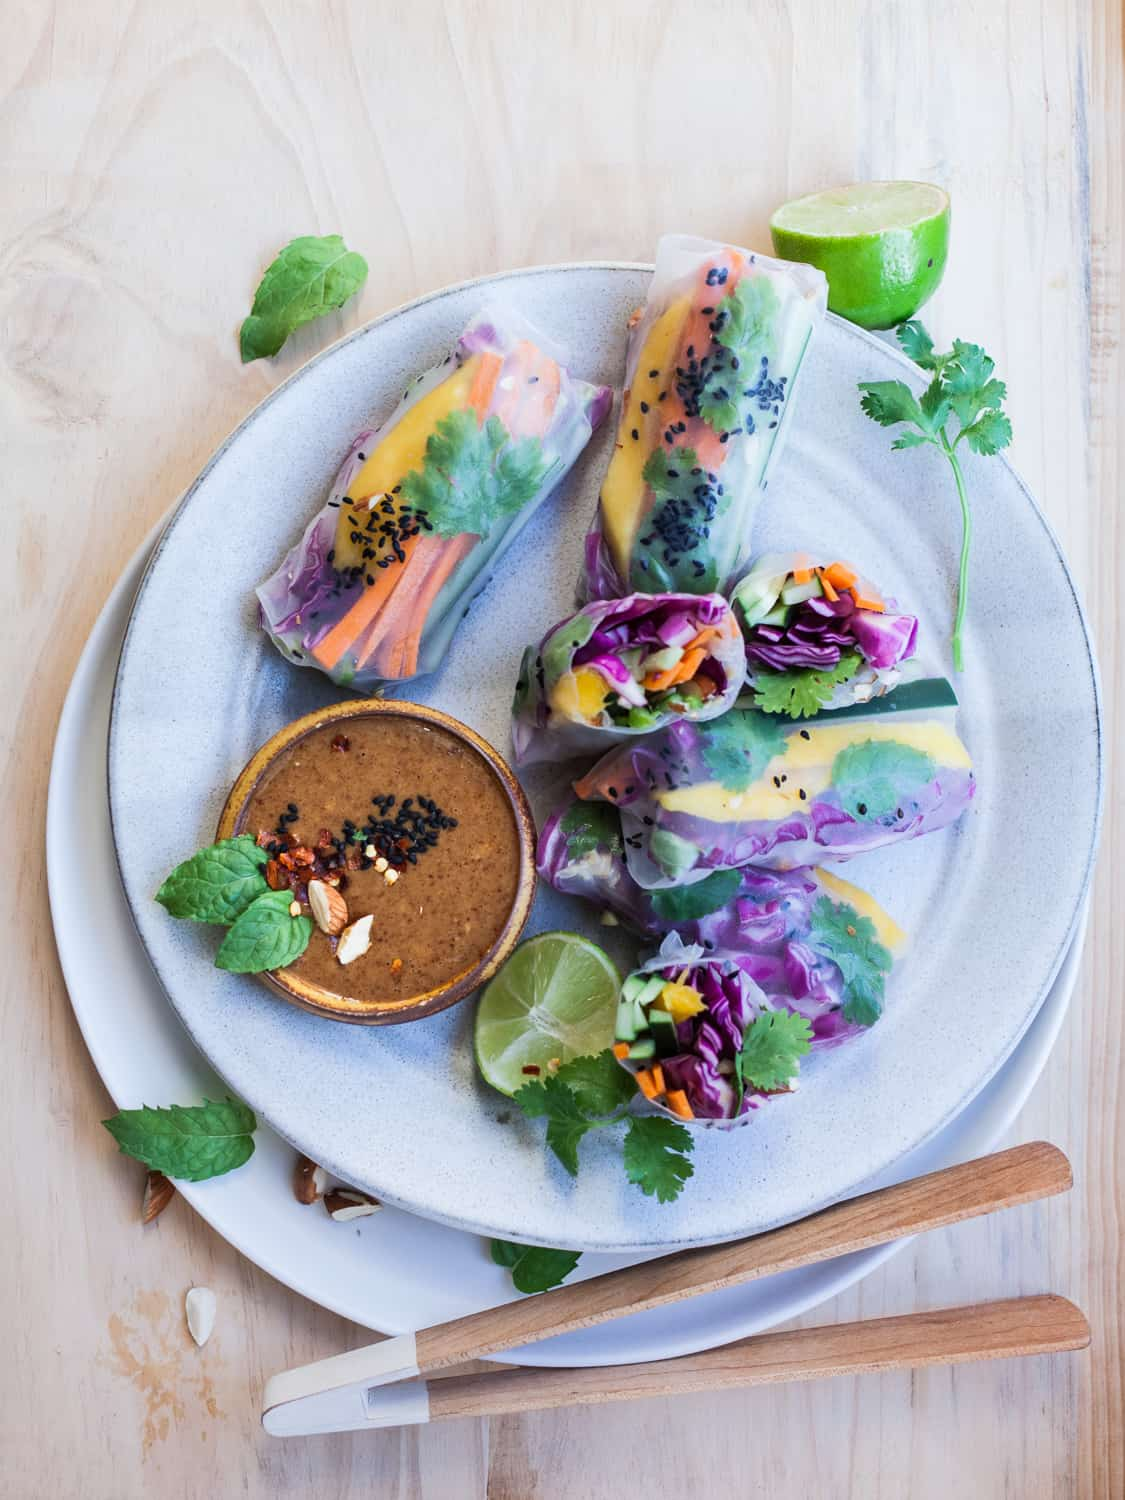 These summer rolls (aka fresh spring rolls) with almond butter satay are great for picnics and camping trips!